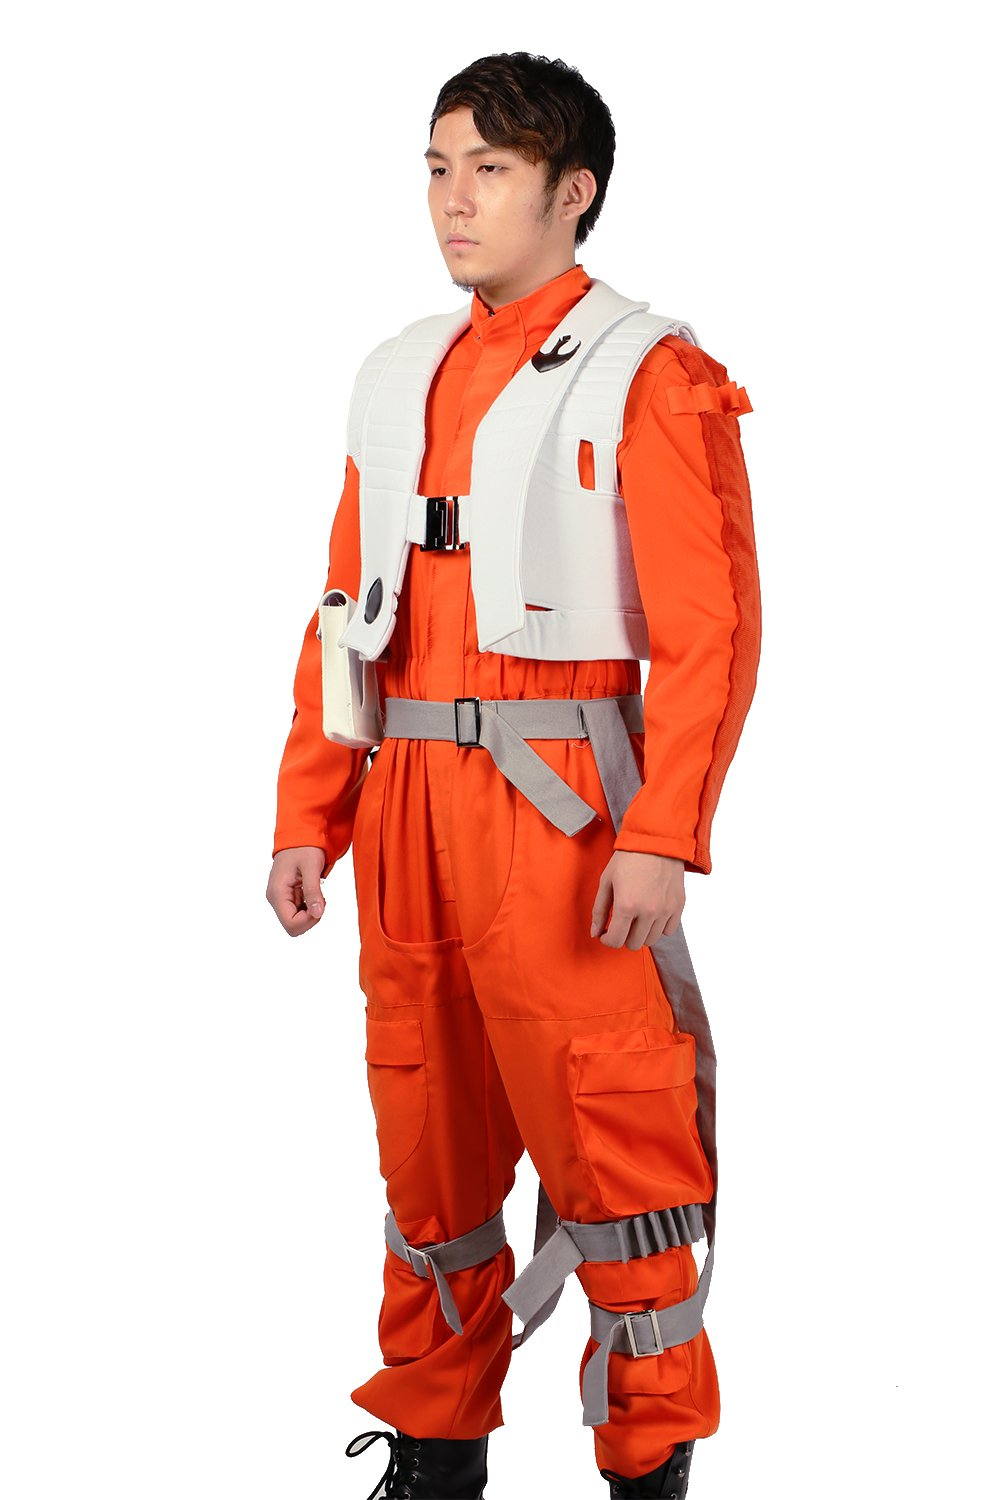 XCOSER Poe Dameron Costume Deluxe Orange Jumpsuit Suit Halloween Cosplay Outfit XL by xcoser (Image #5)